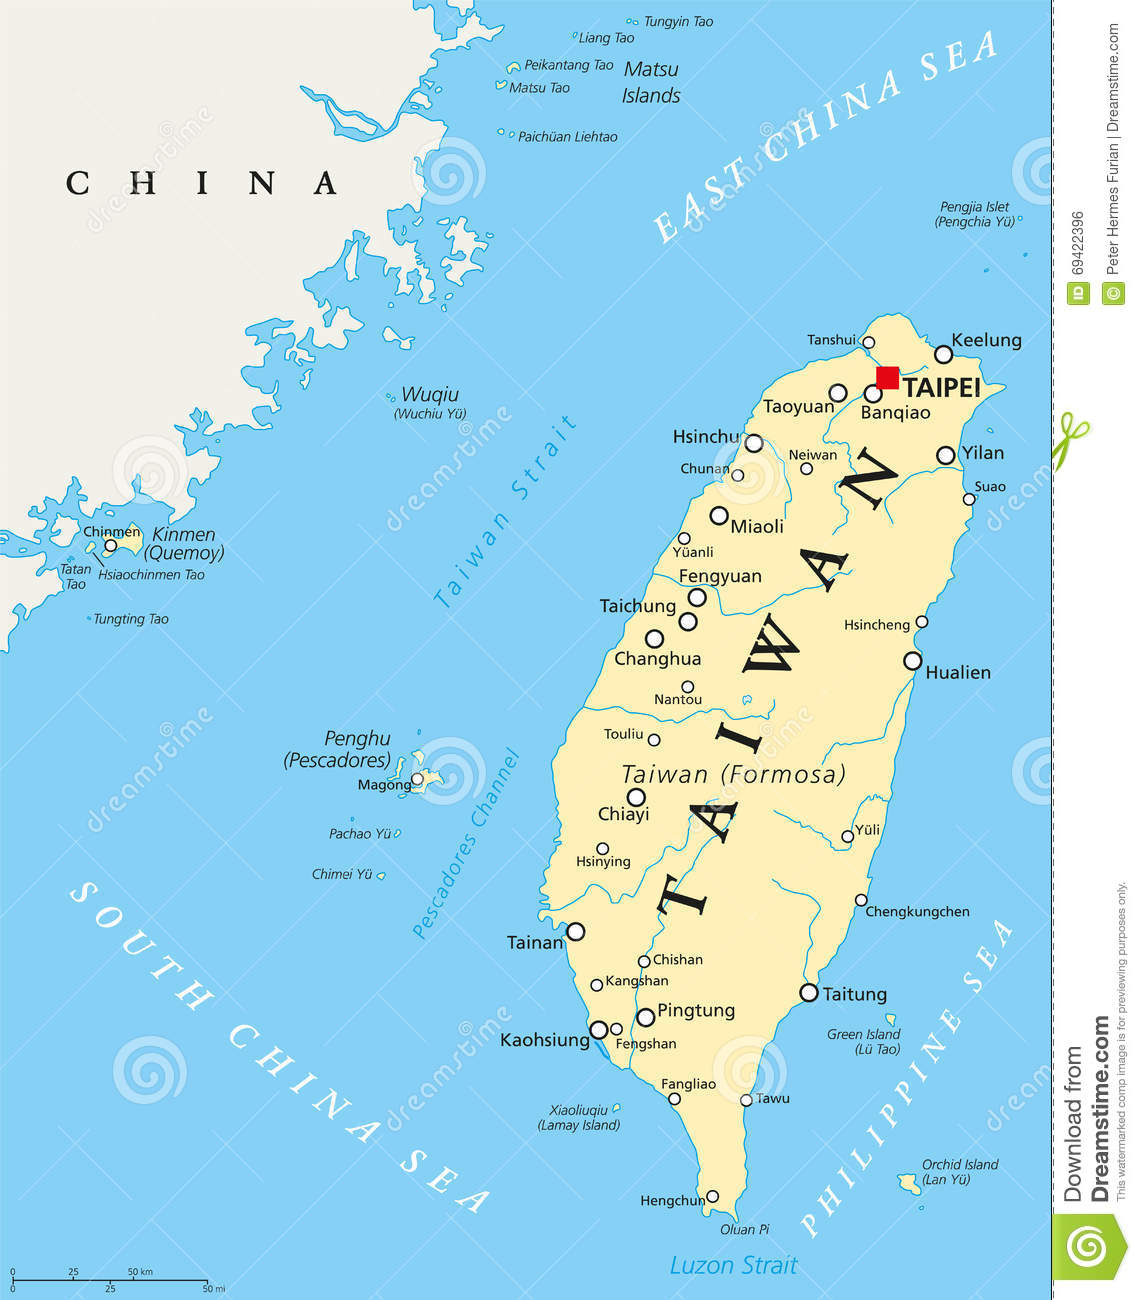 Map Of China Cities In English.Taiwan Republic Of China Political Map Stock Vector Illustration